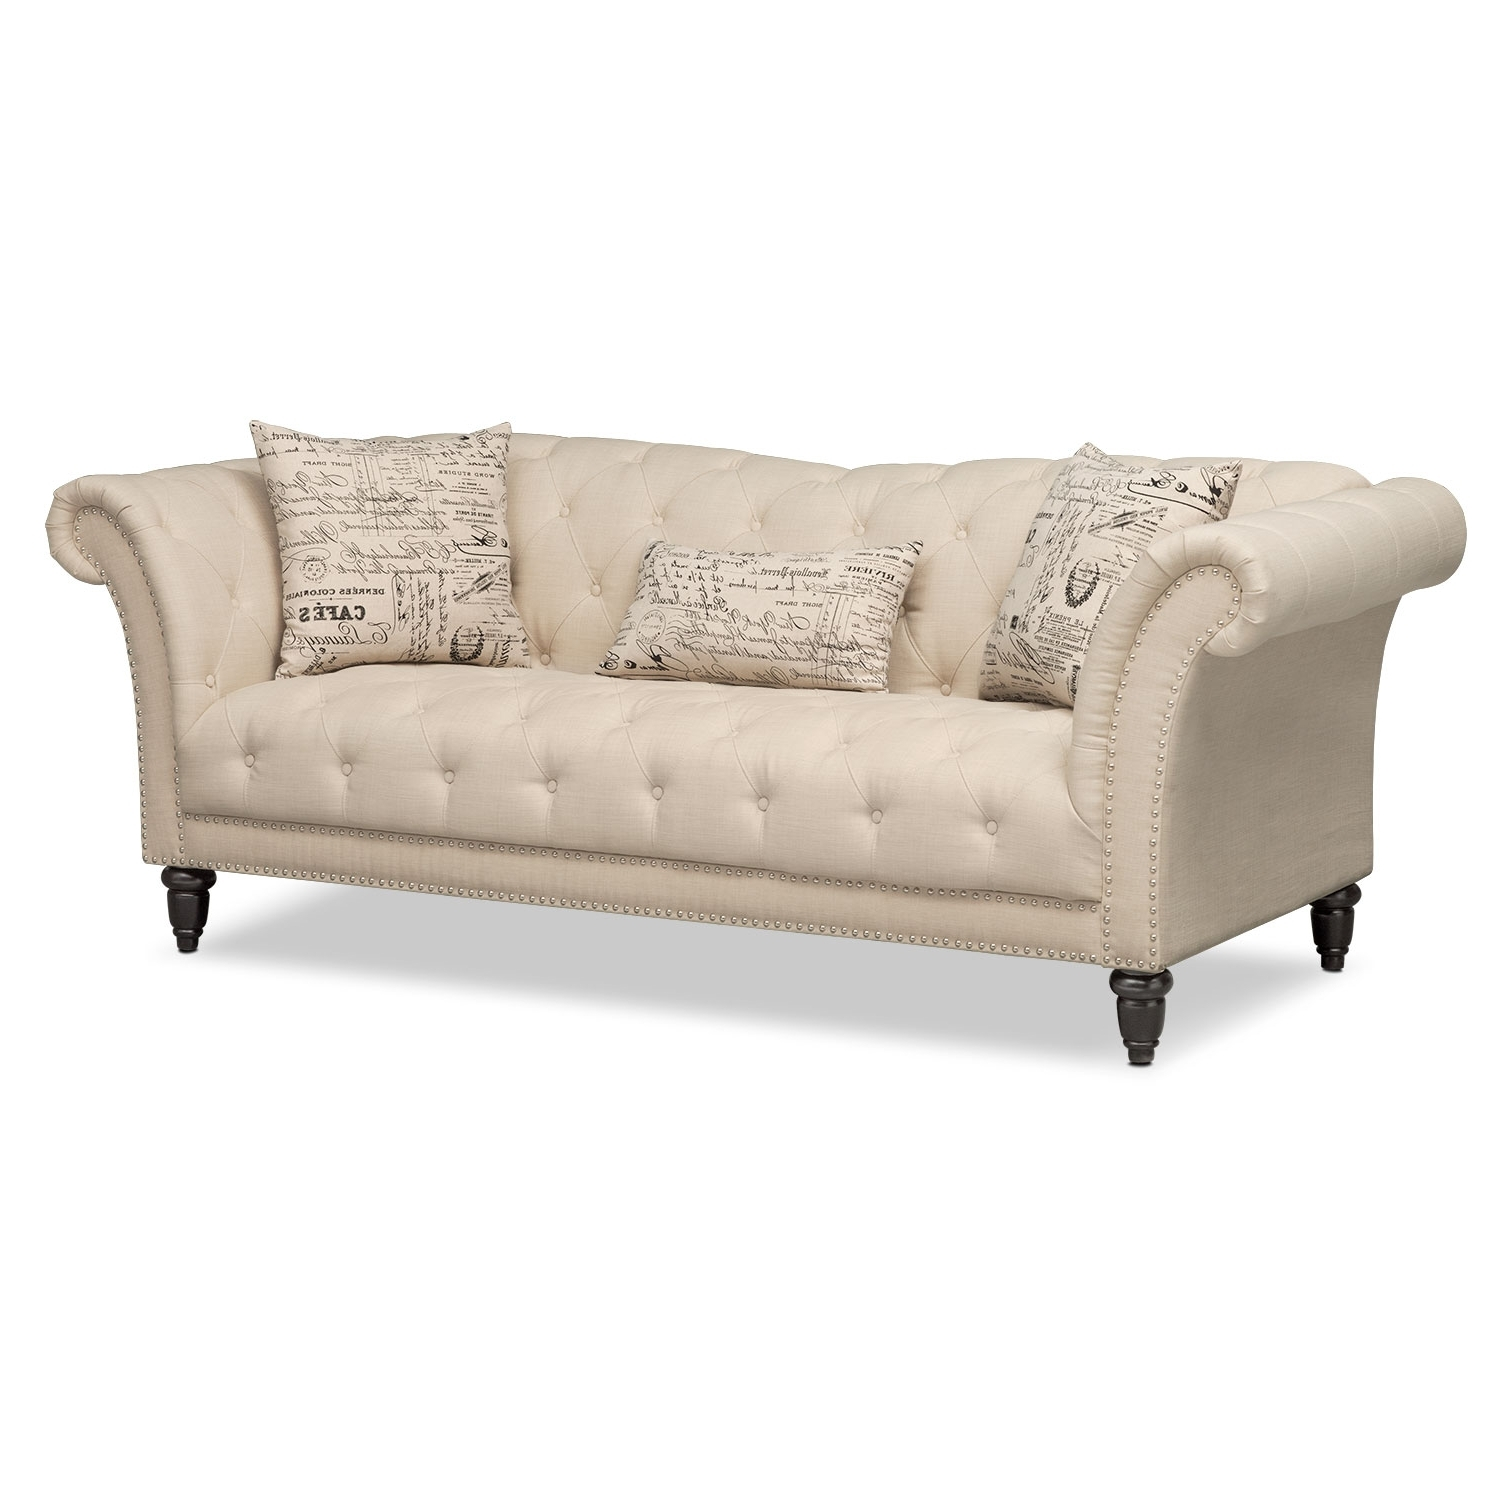 Value City Regarding Value City Sofas (Gallery 2 of 20)